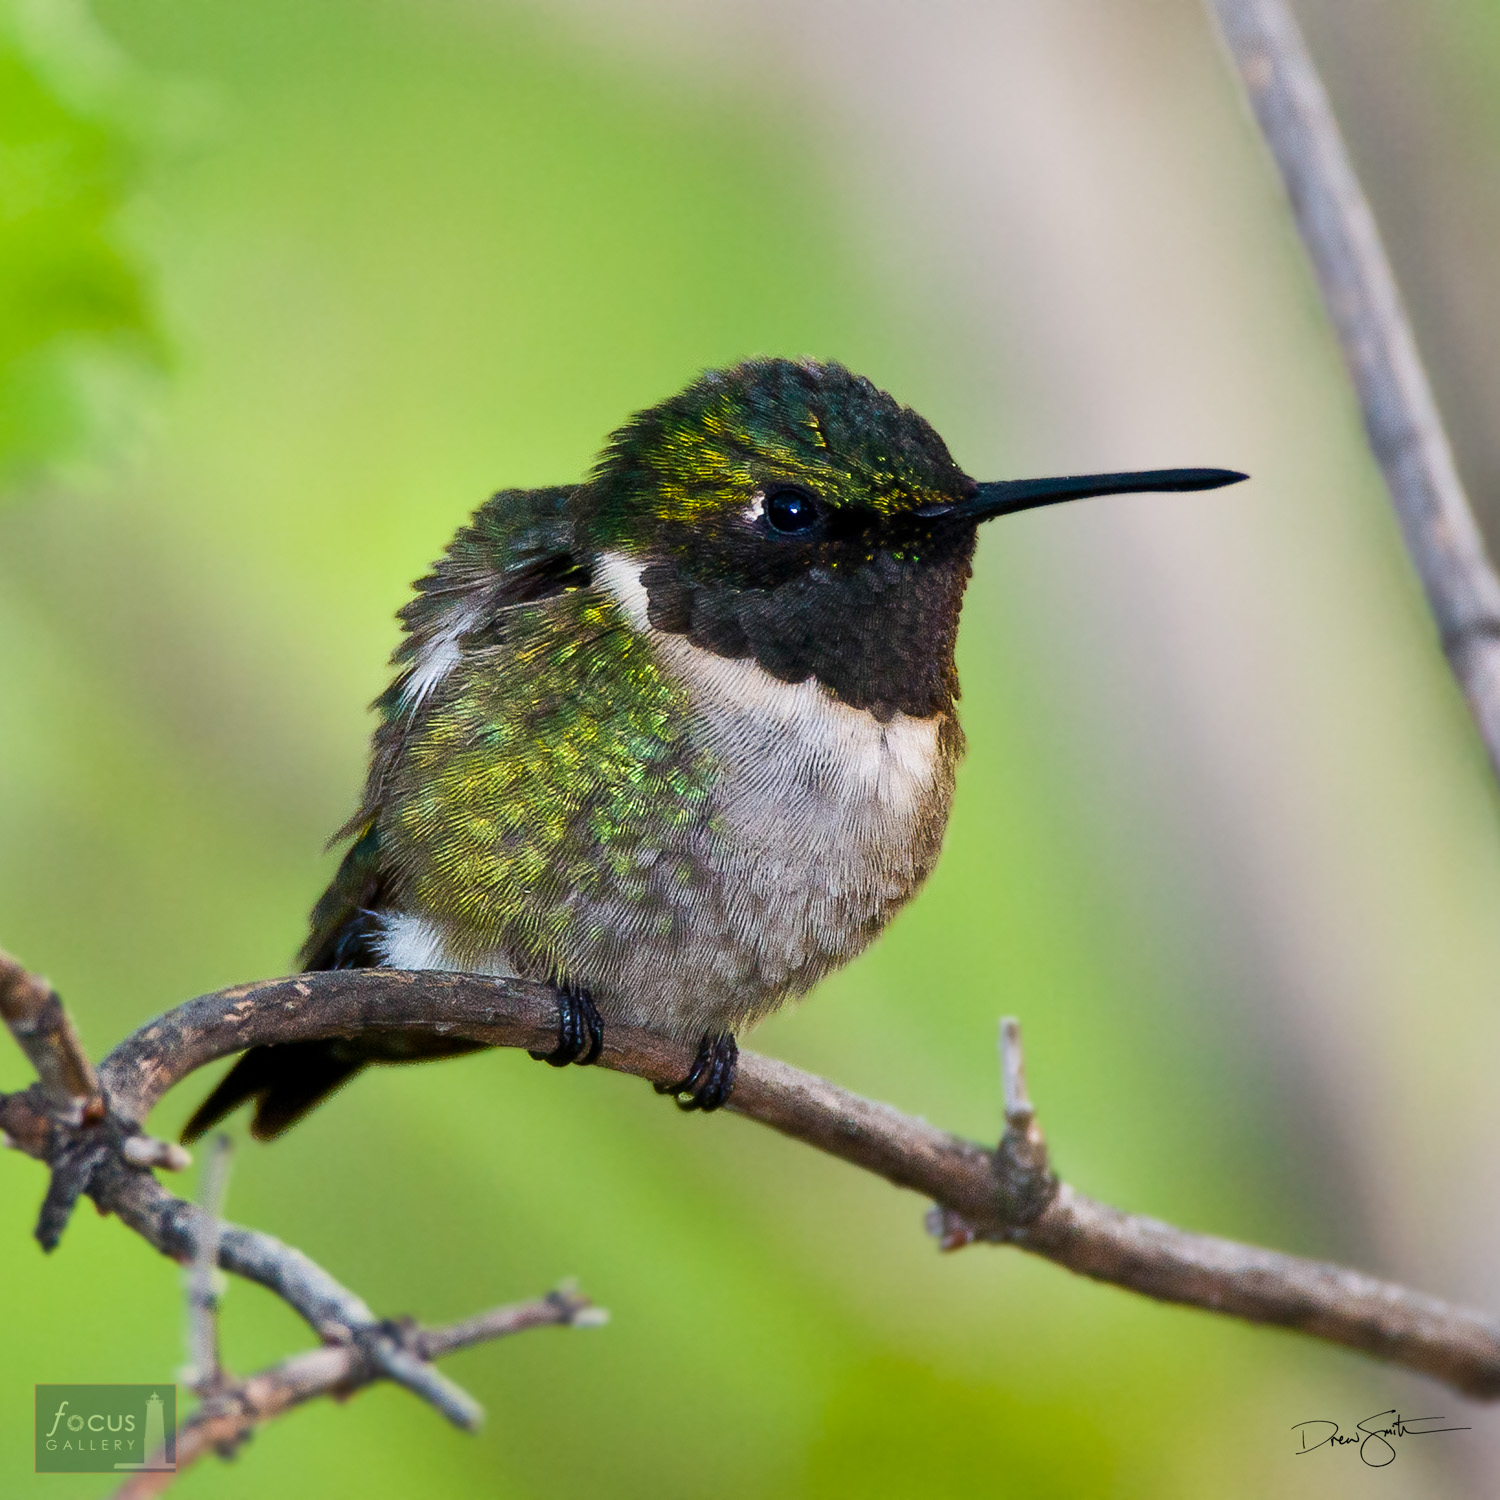 A male Ruby-throated Hummingbird (Archilochus colubris) perched on a branch.